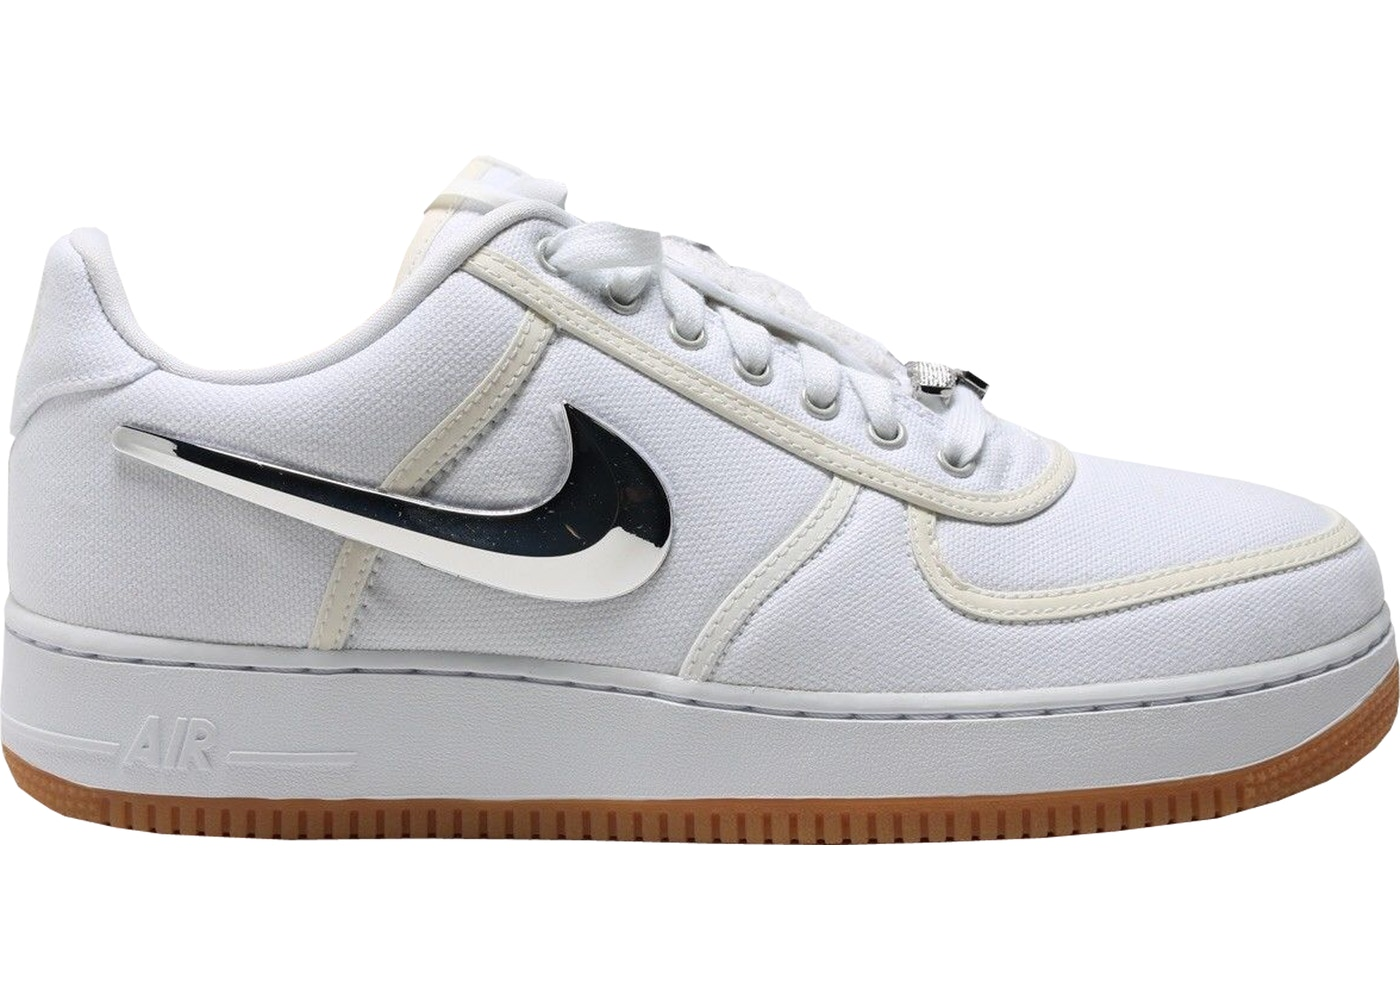 All Air Force One Shoes